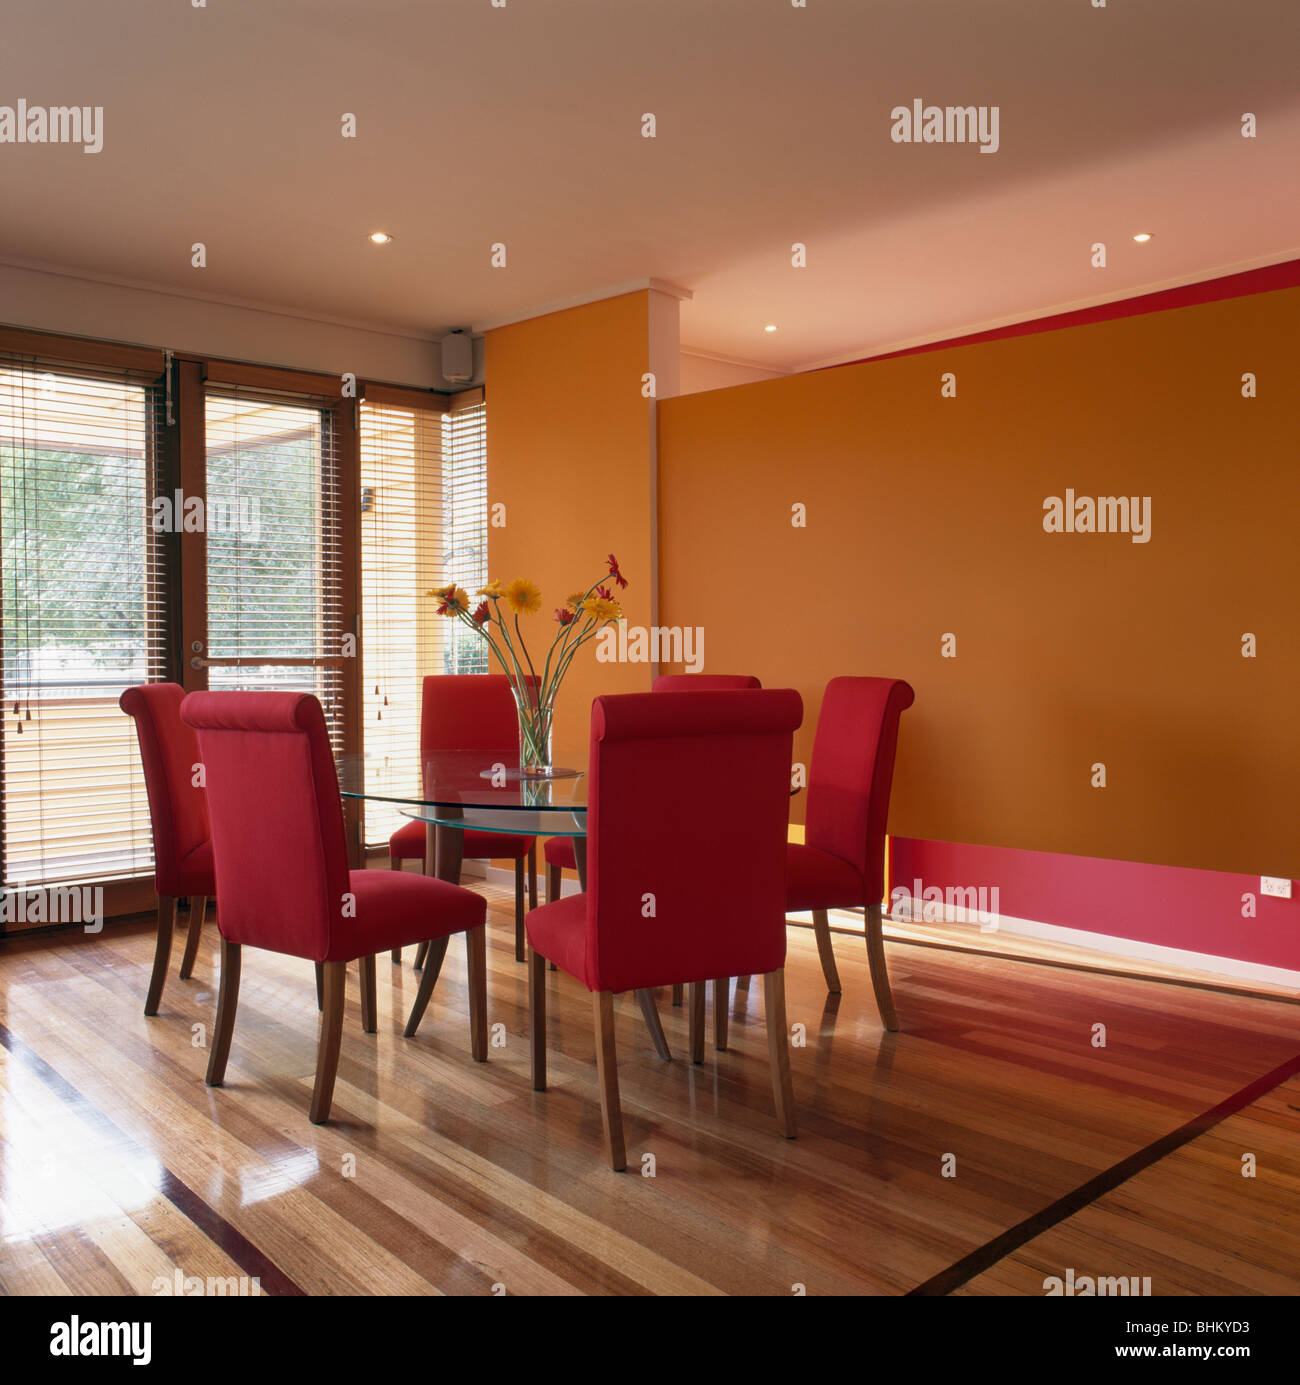 Red upholstered chairs in modern orange dining room with striped wooden flooring Stock Photo